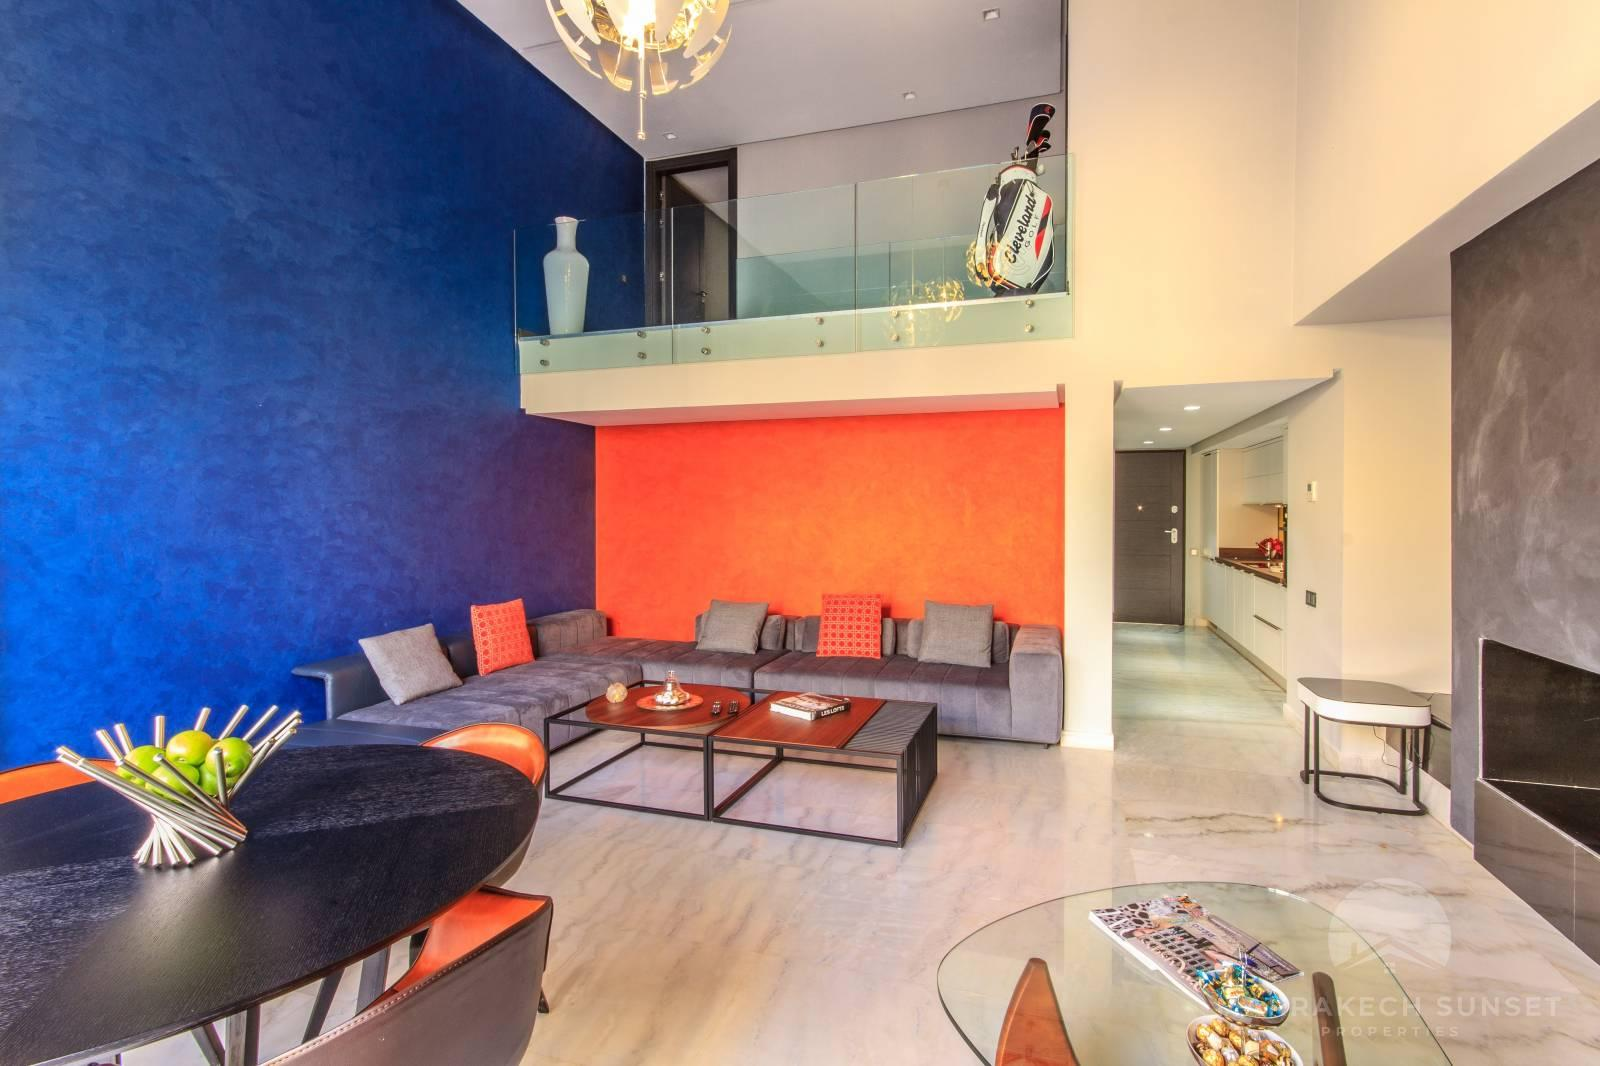 3 bedroom Loft apartment for sale in a gated Community in marrakech